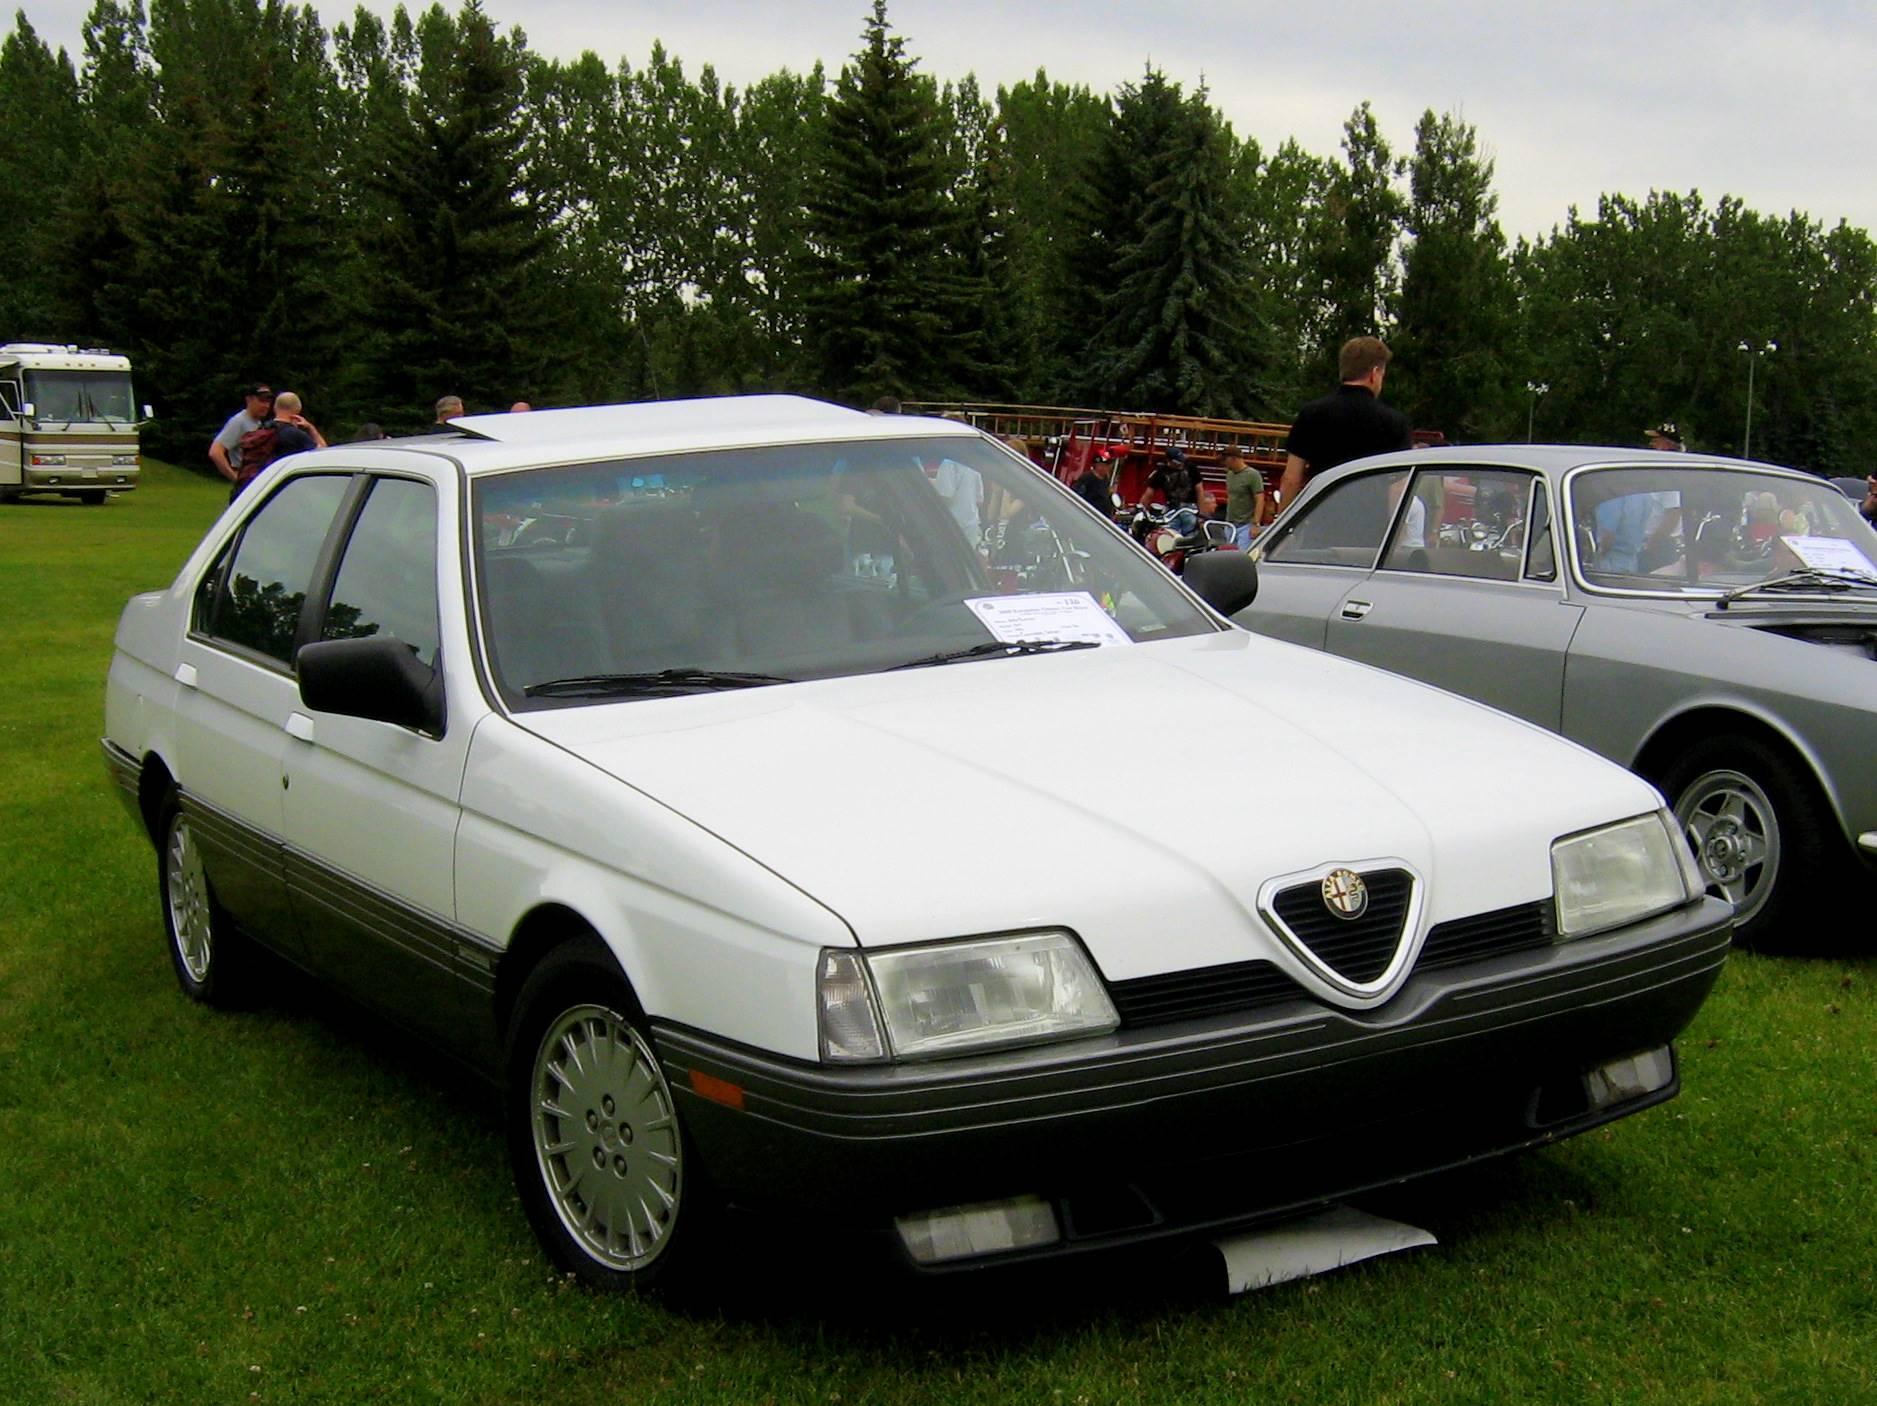 1995 Alfa Romeo 164 LS 4dr Sedan 5 spd manual w OD